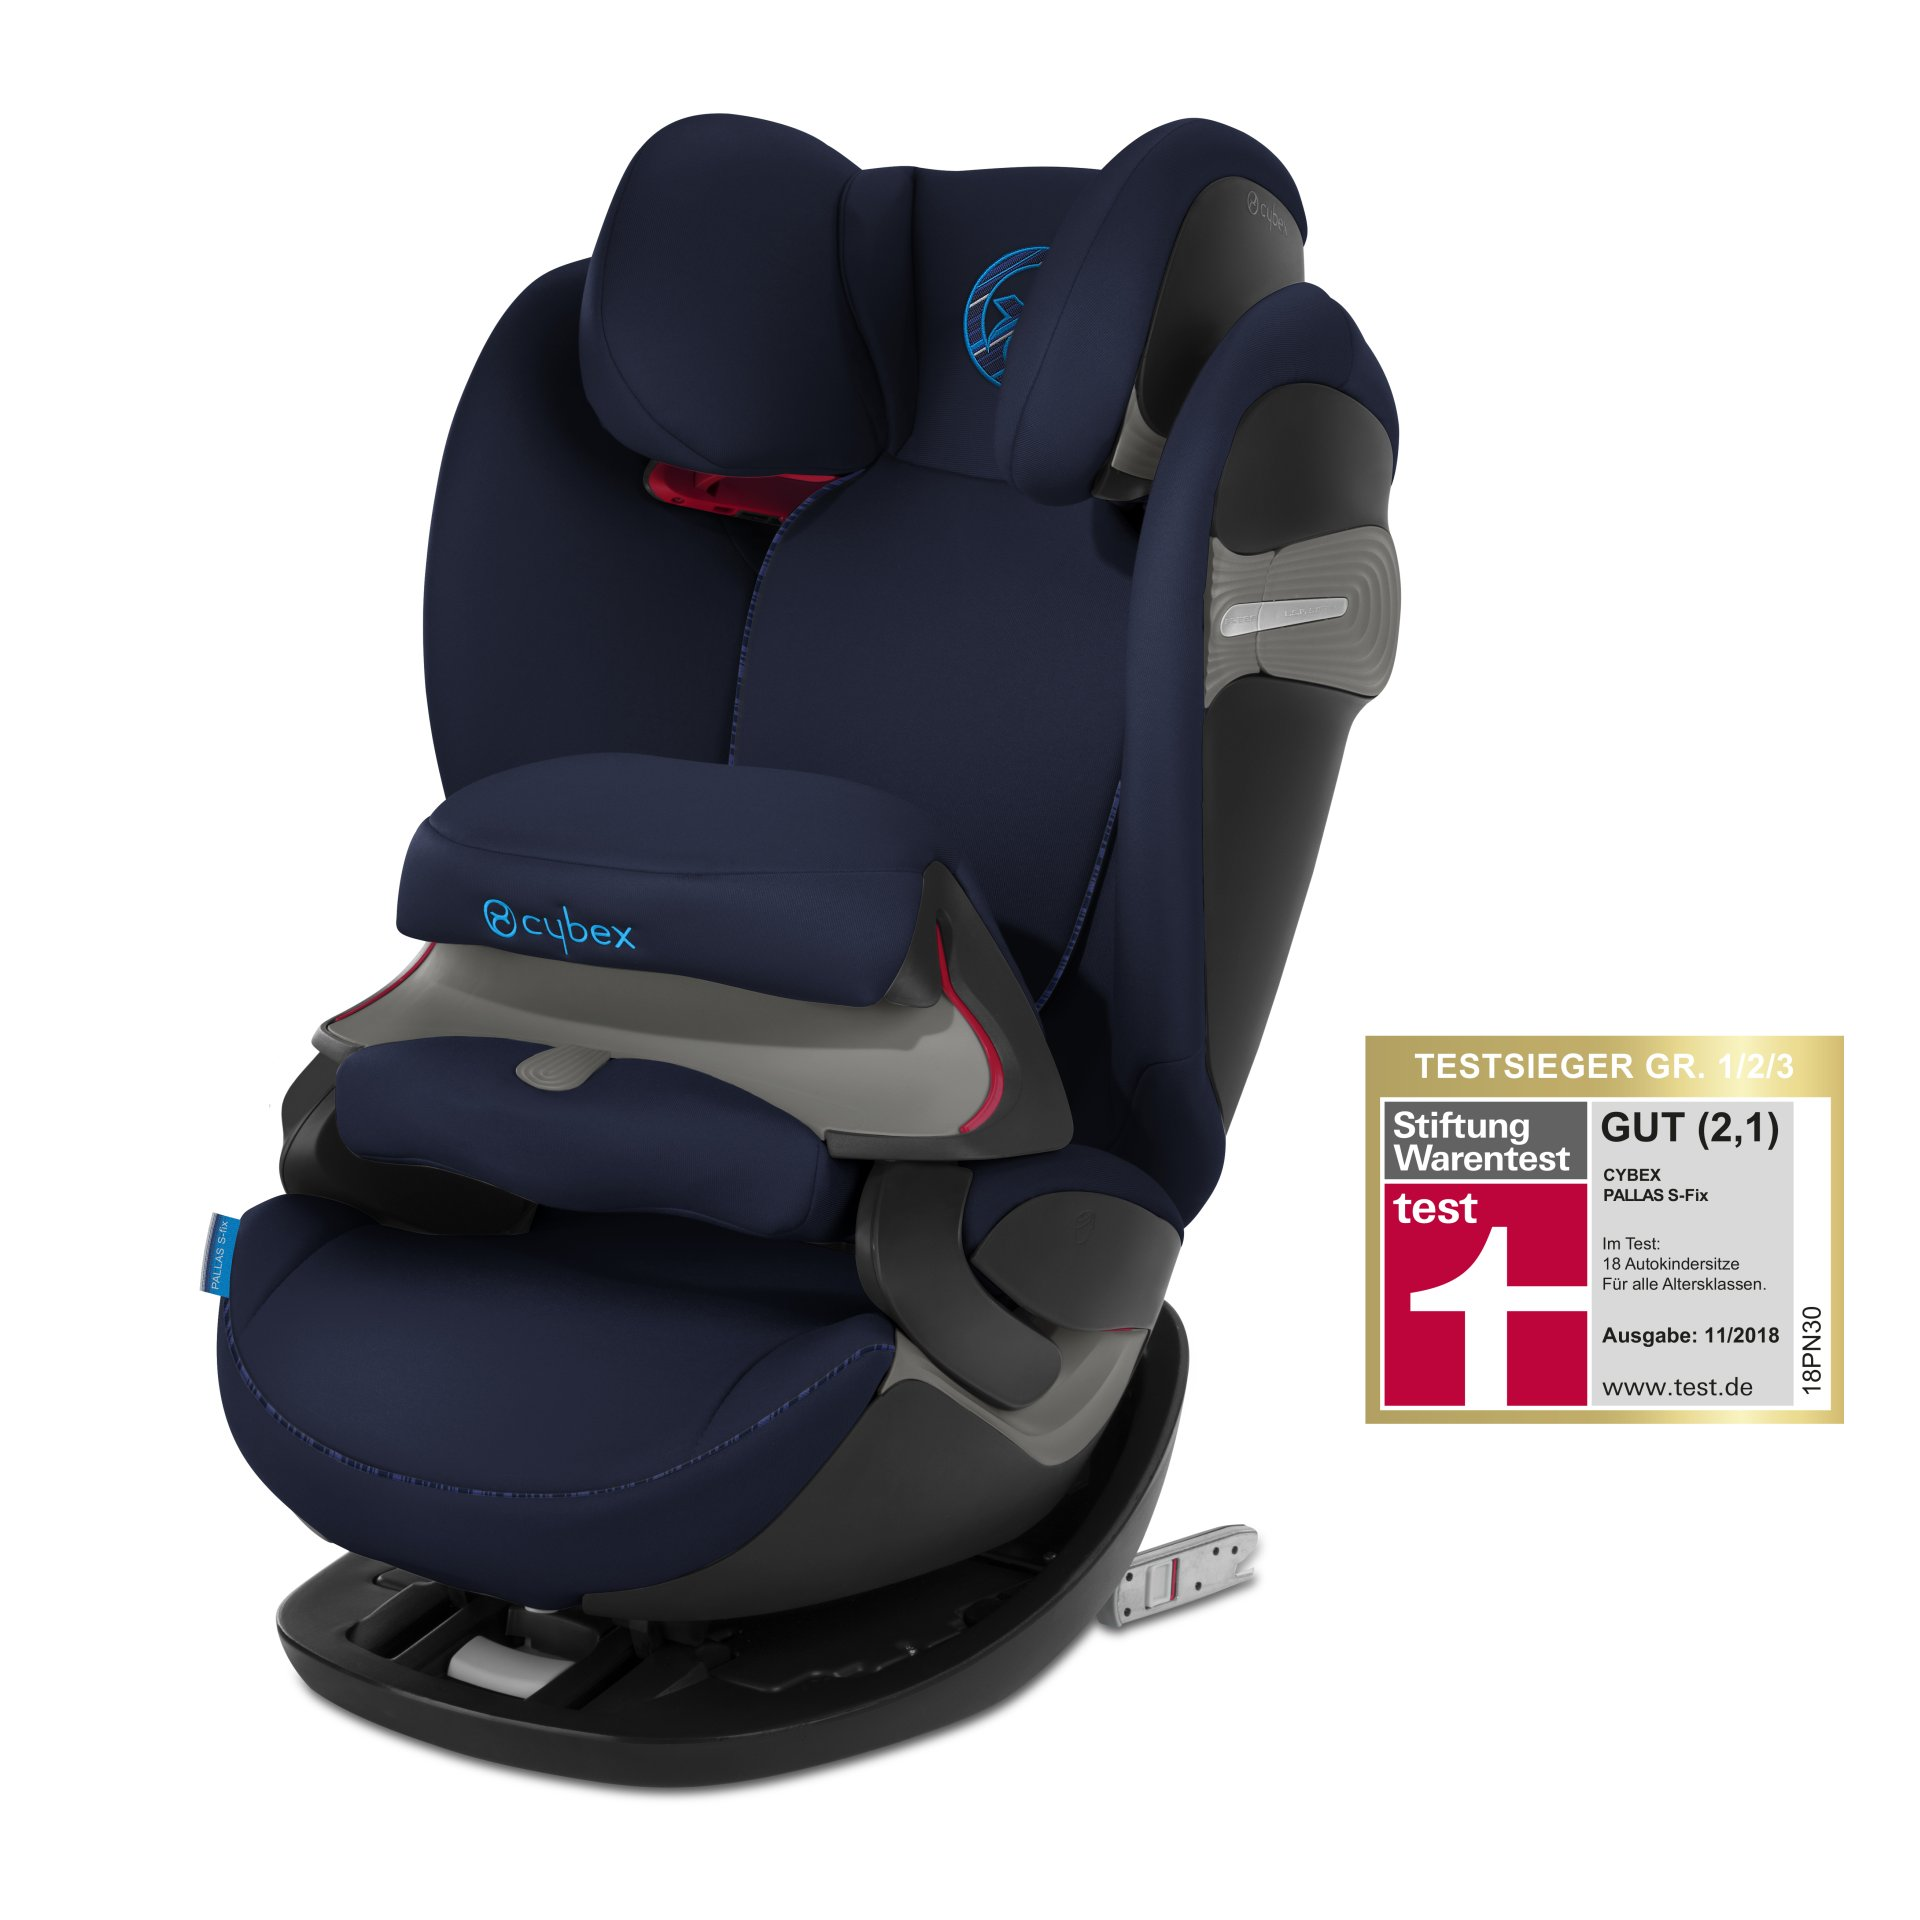 cybex child car seat pallas s fix 2019 indigo blue navy blue buy at kidsroom car seats. Black Bedroom Furniture Sets. Home Design Ideas